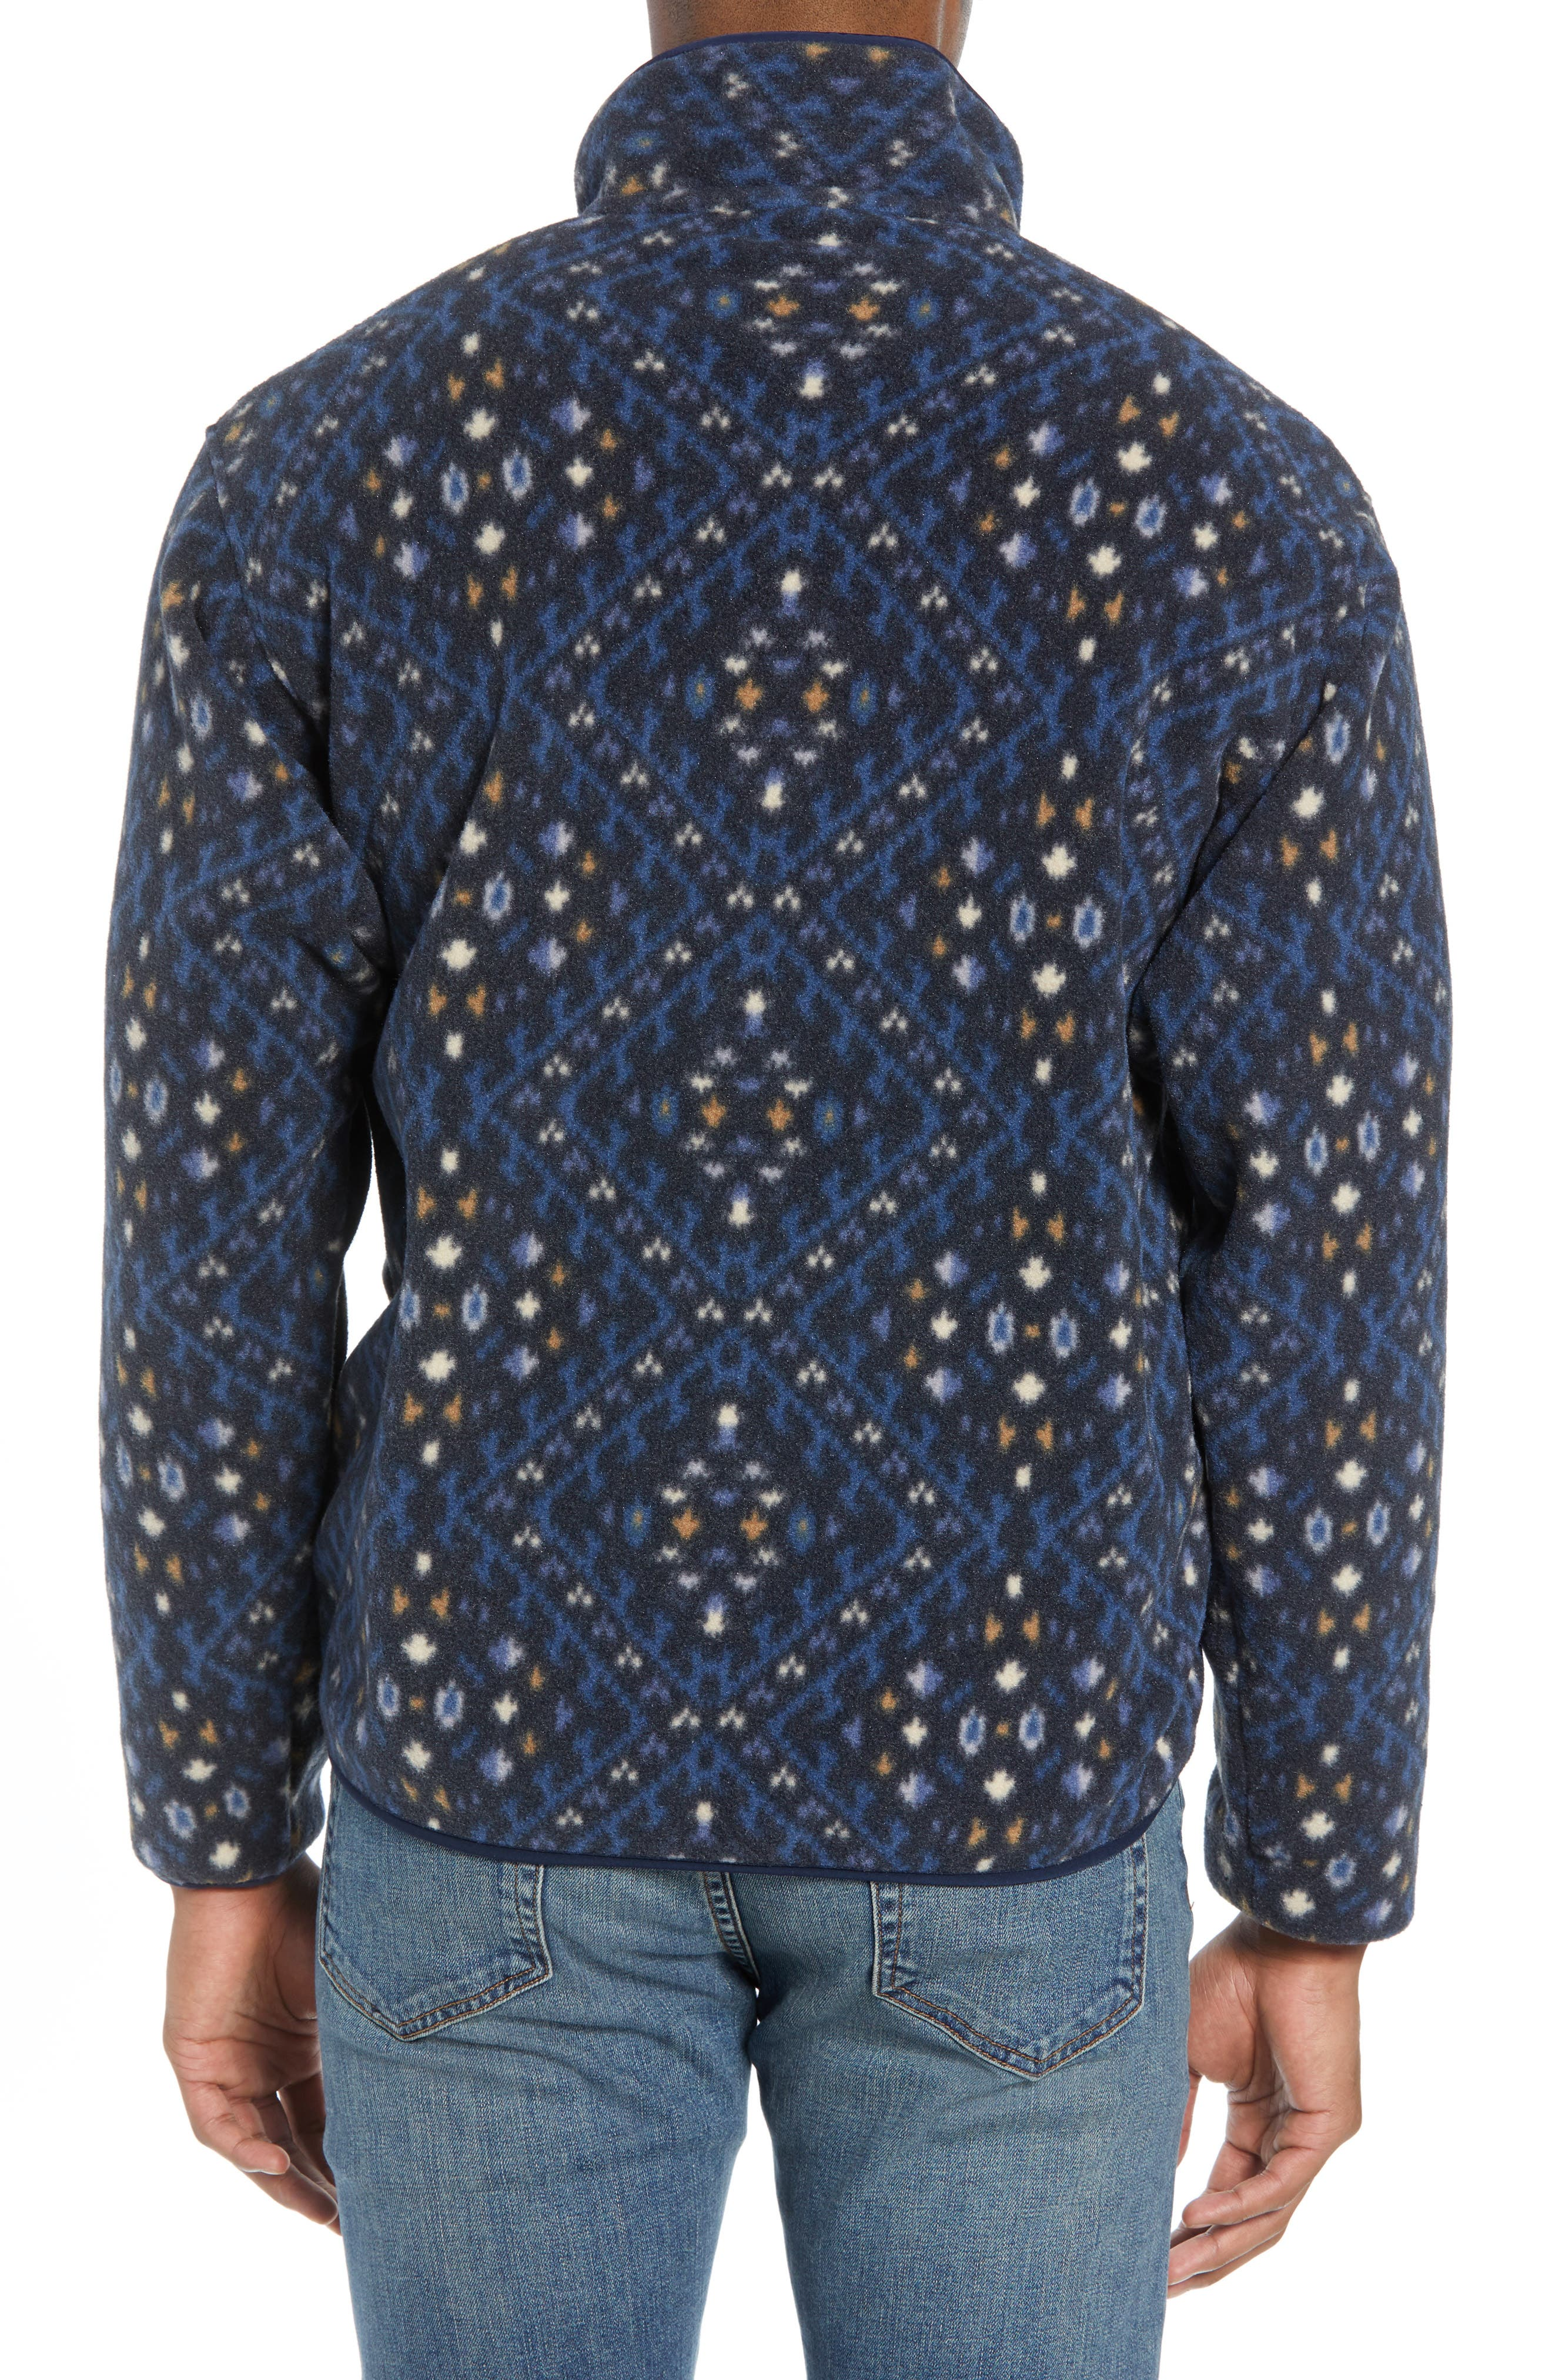 Synchilla<sup>®</sup> Snap-T<sup>®</sup> Fleece Pullover,                             Alternate thumbnail 2, color,                             HOWL/ STONE BLUE